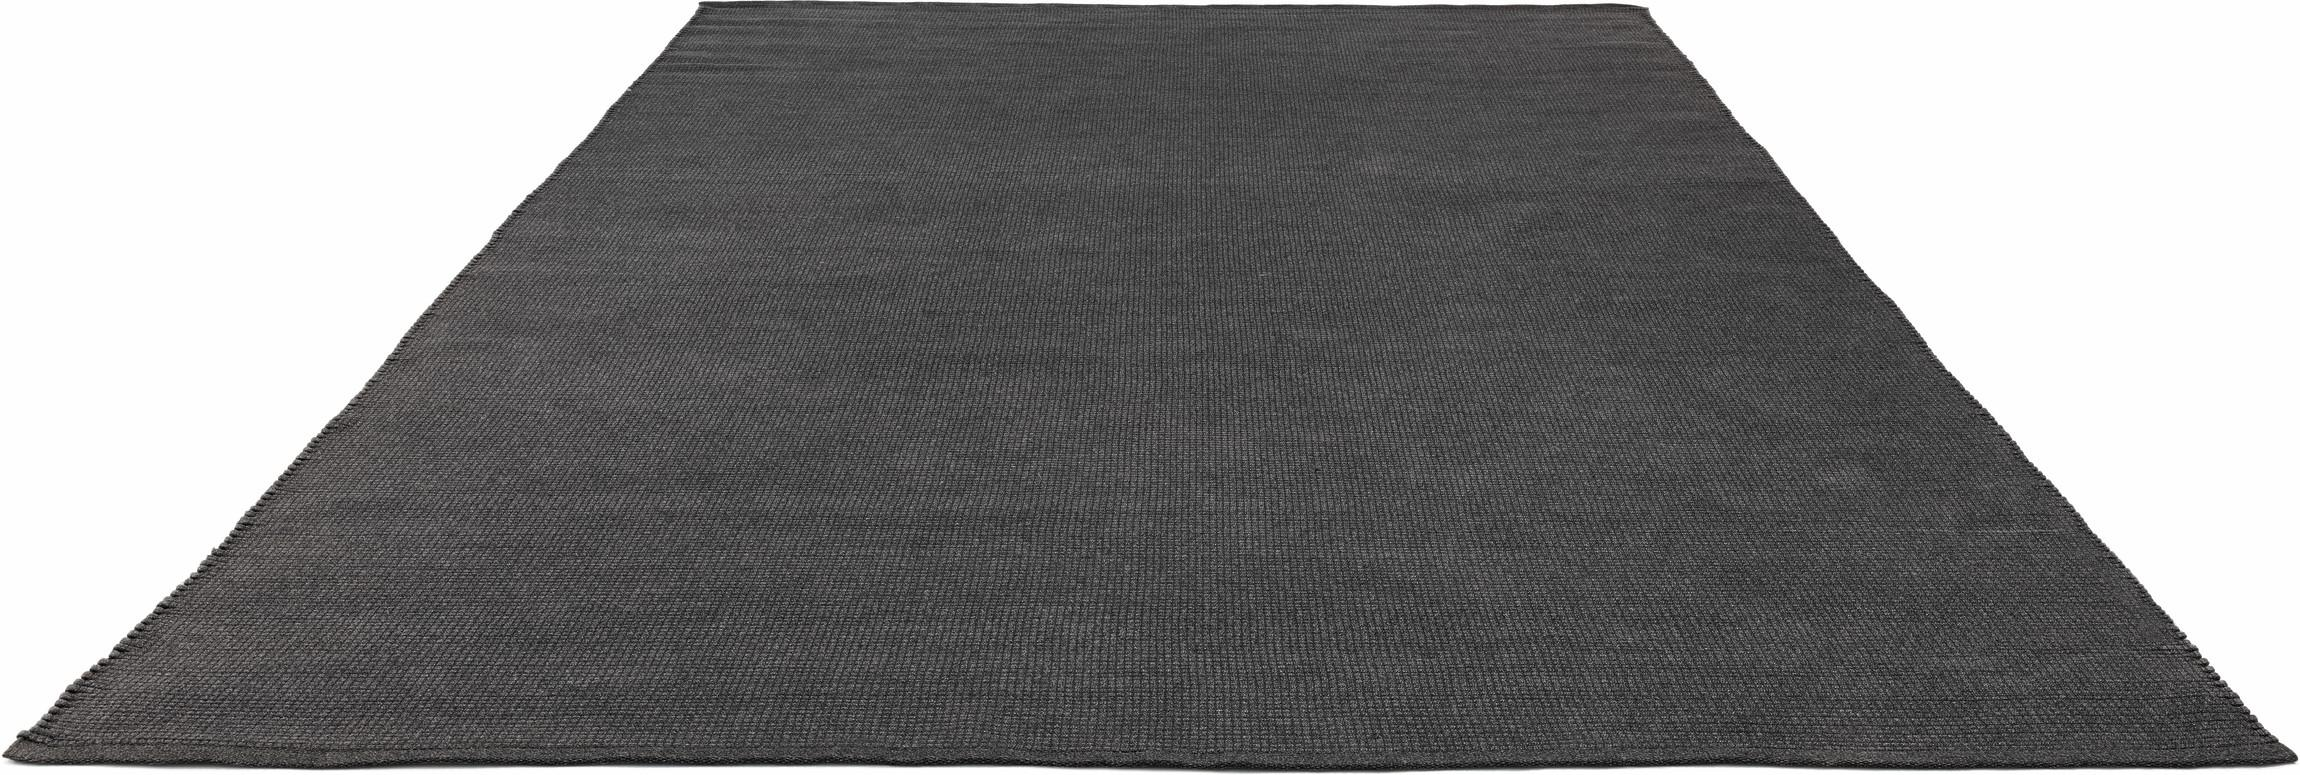 Rugs Linear 250x350 anthracite